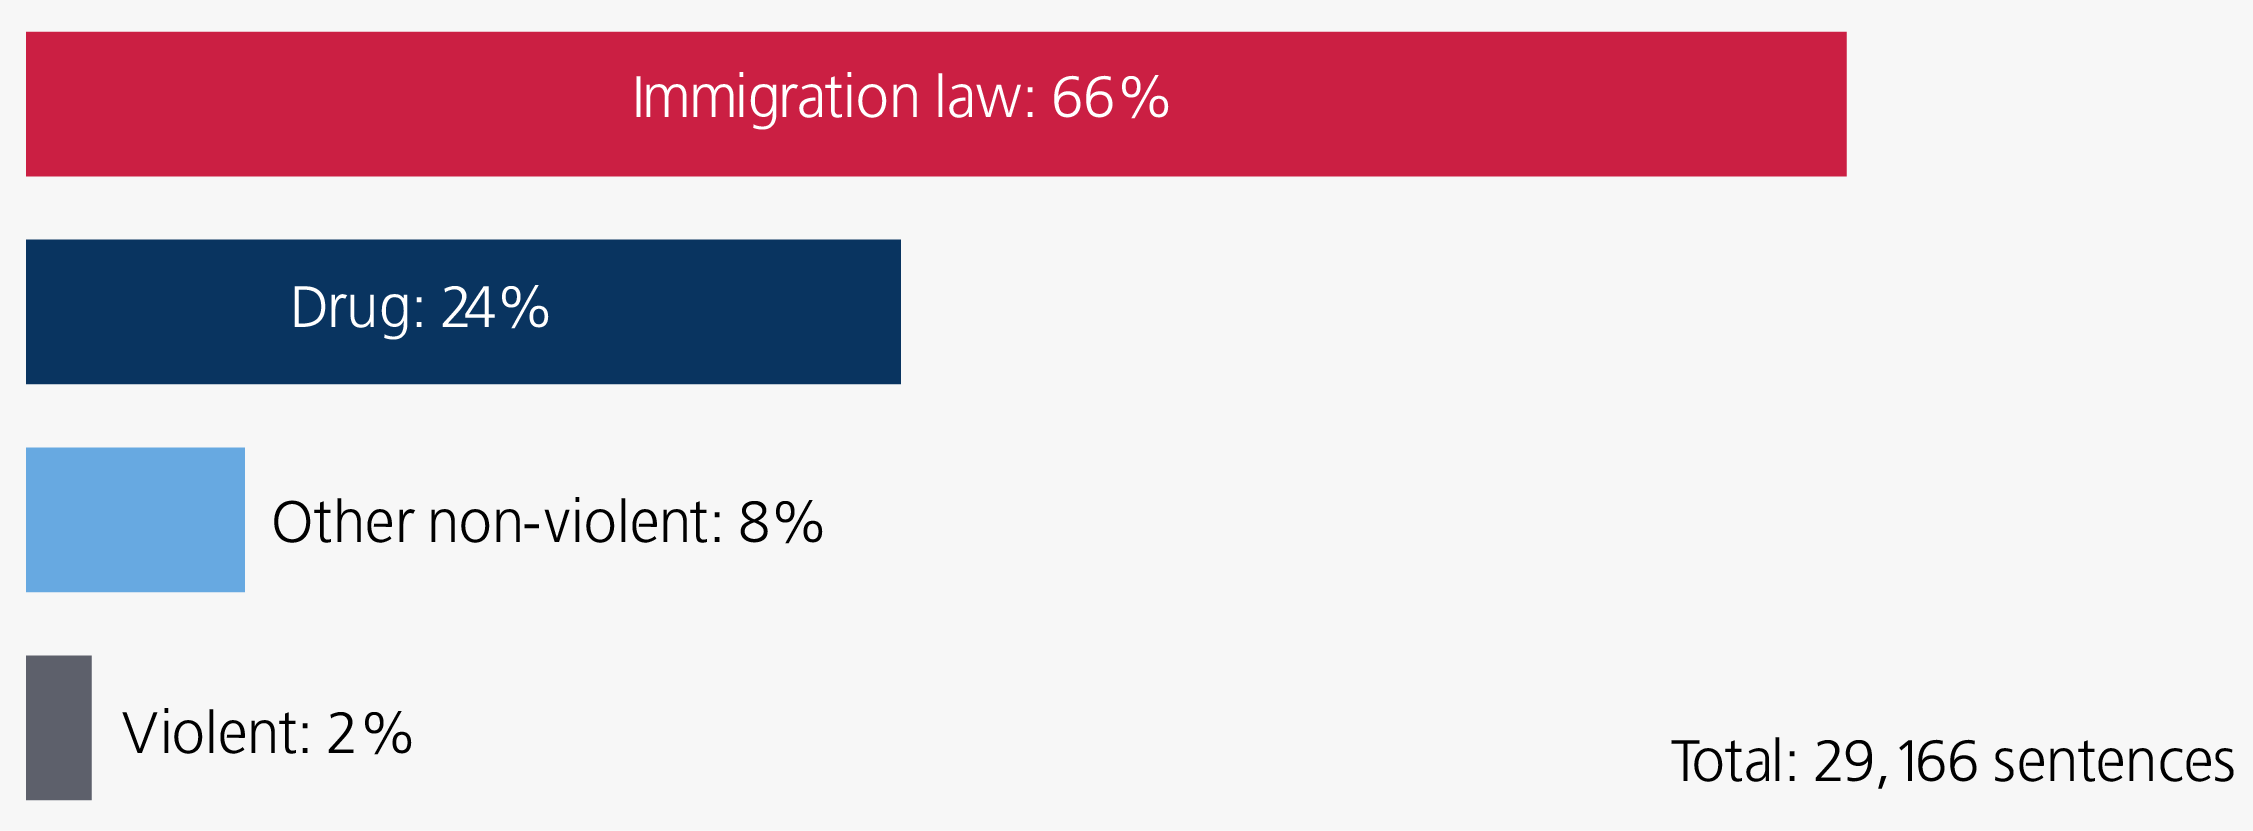 immigration v violent v nonviolent MULT SIDE BAR for website